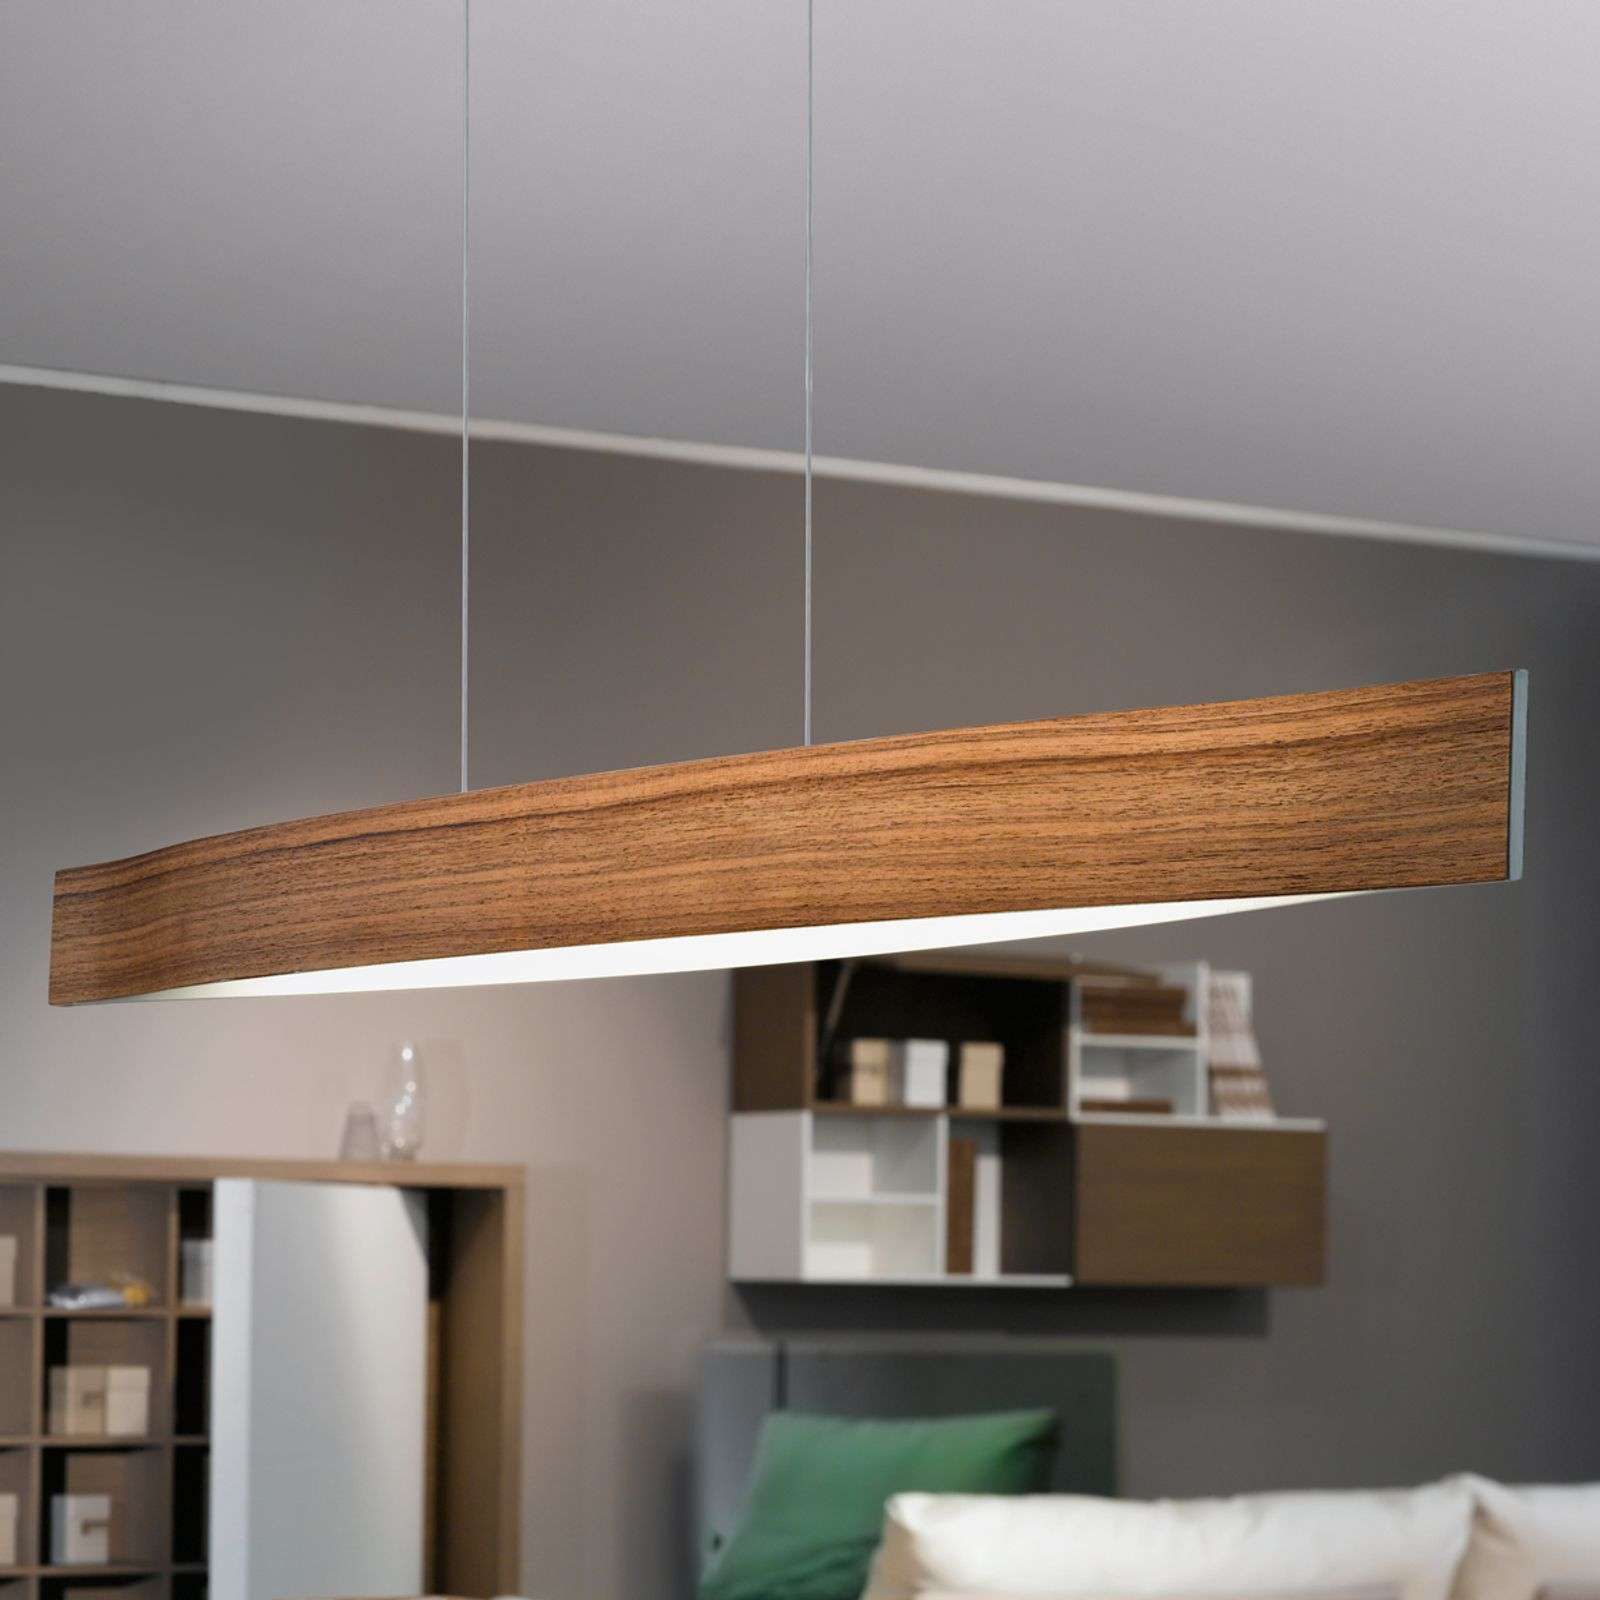 Teinte de bois de noyer - la suspension LED Fornes